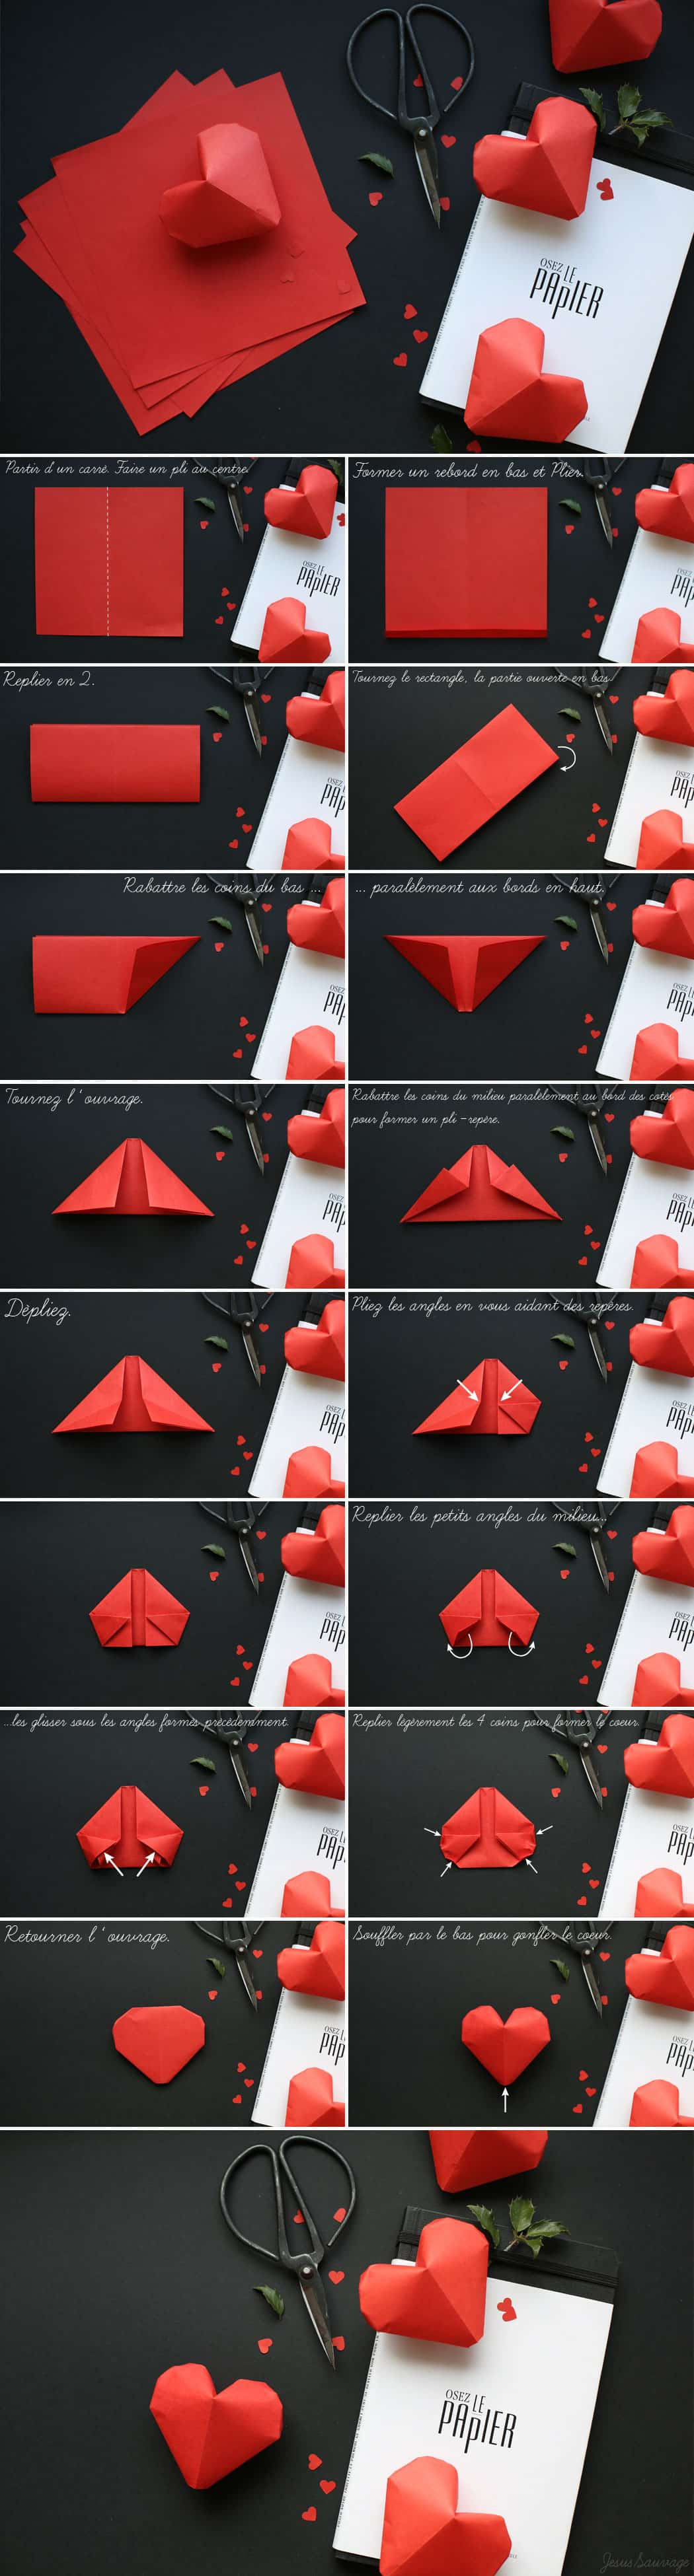 10. DIY ORIGAMI LITTLE PAPER HEARTS FOR THE ROMANTIC IN YOU